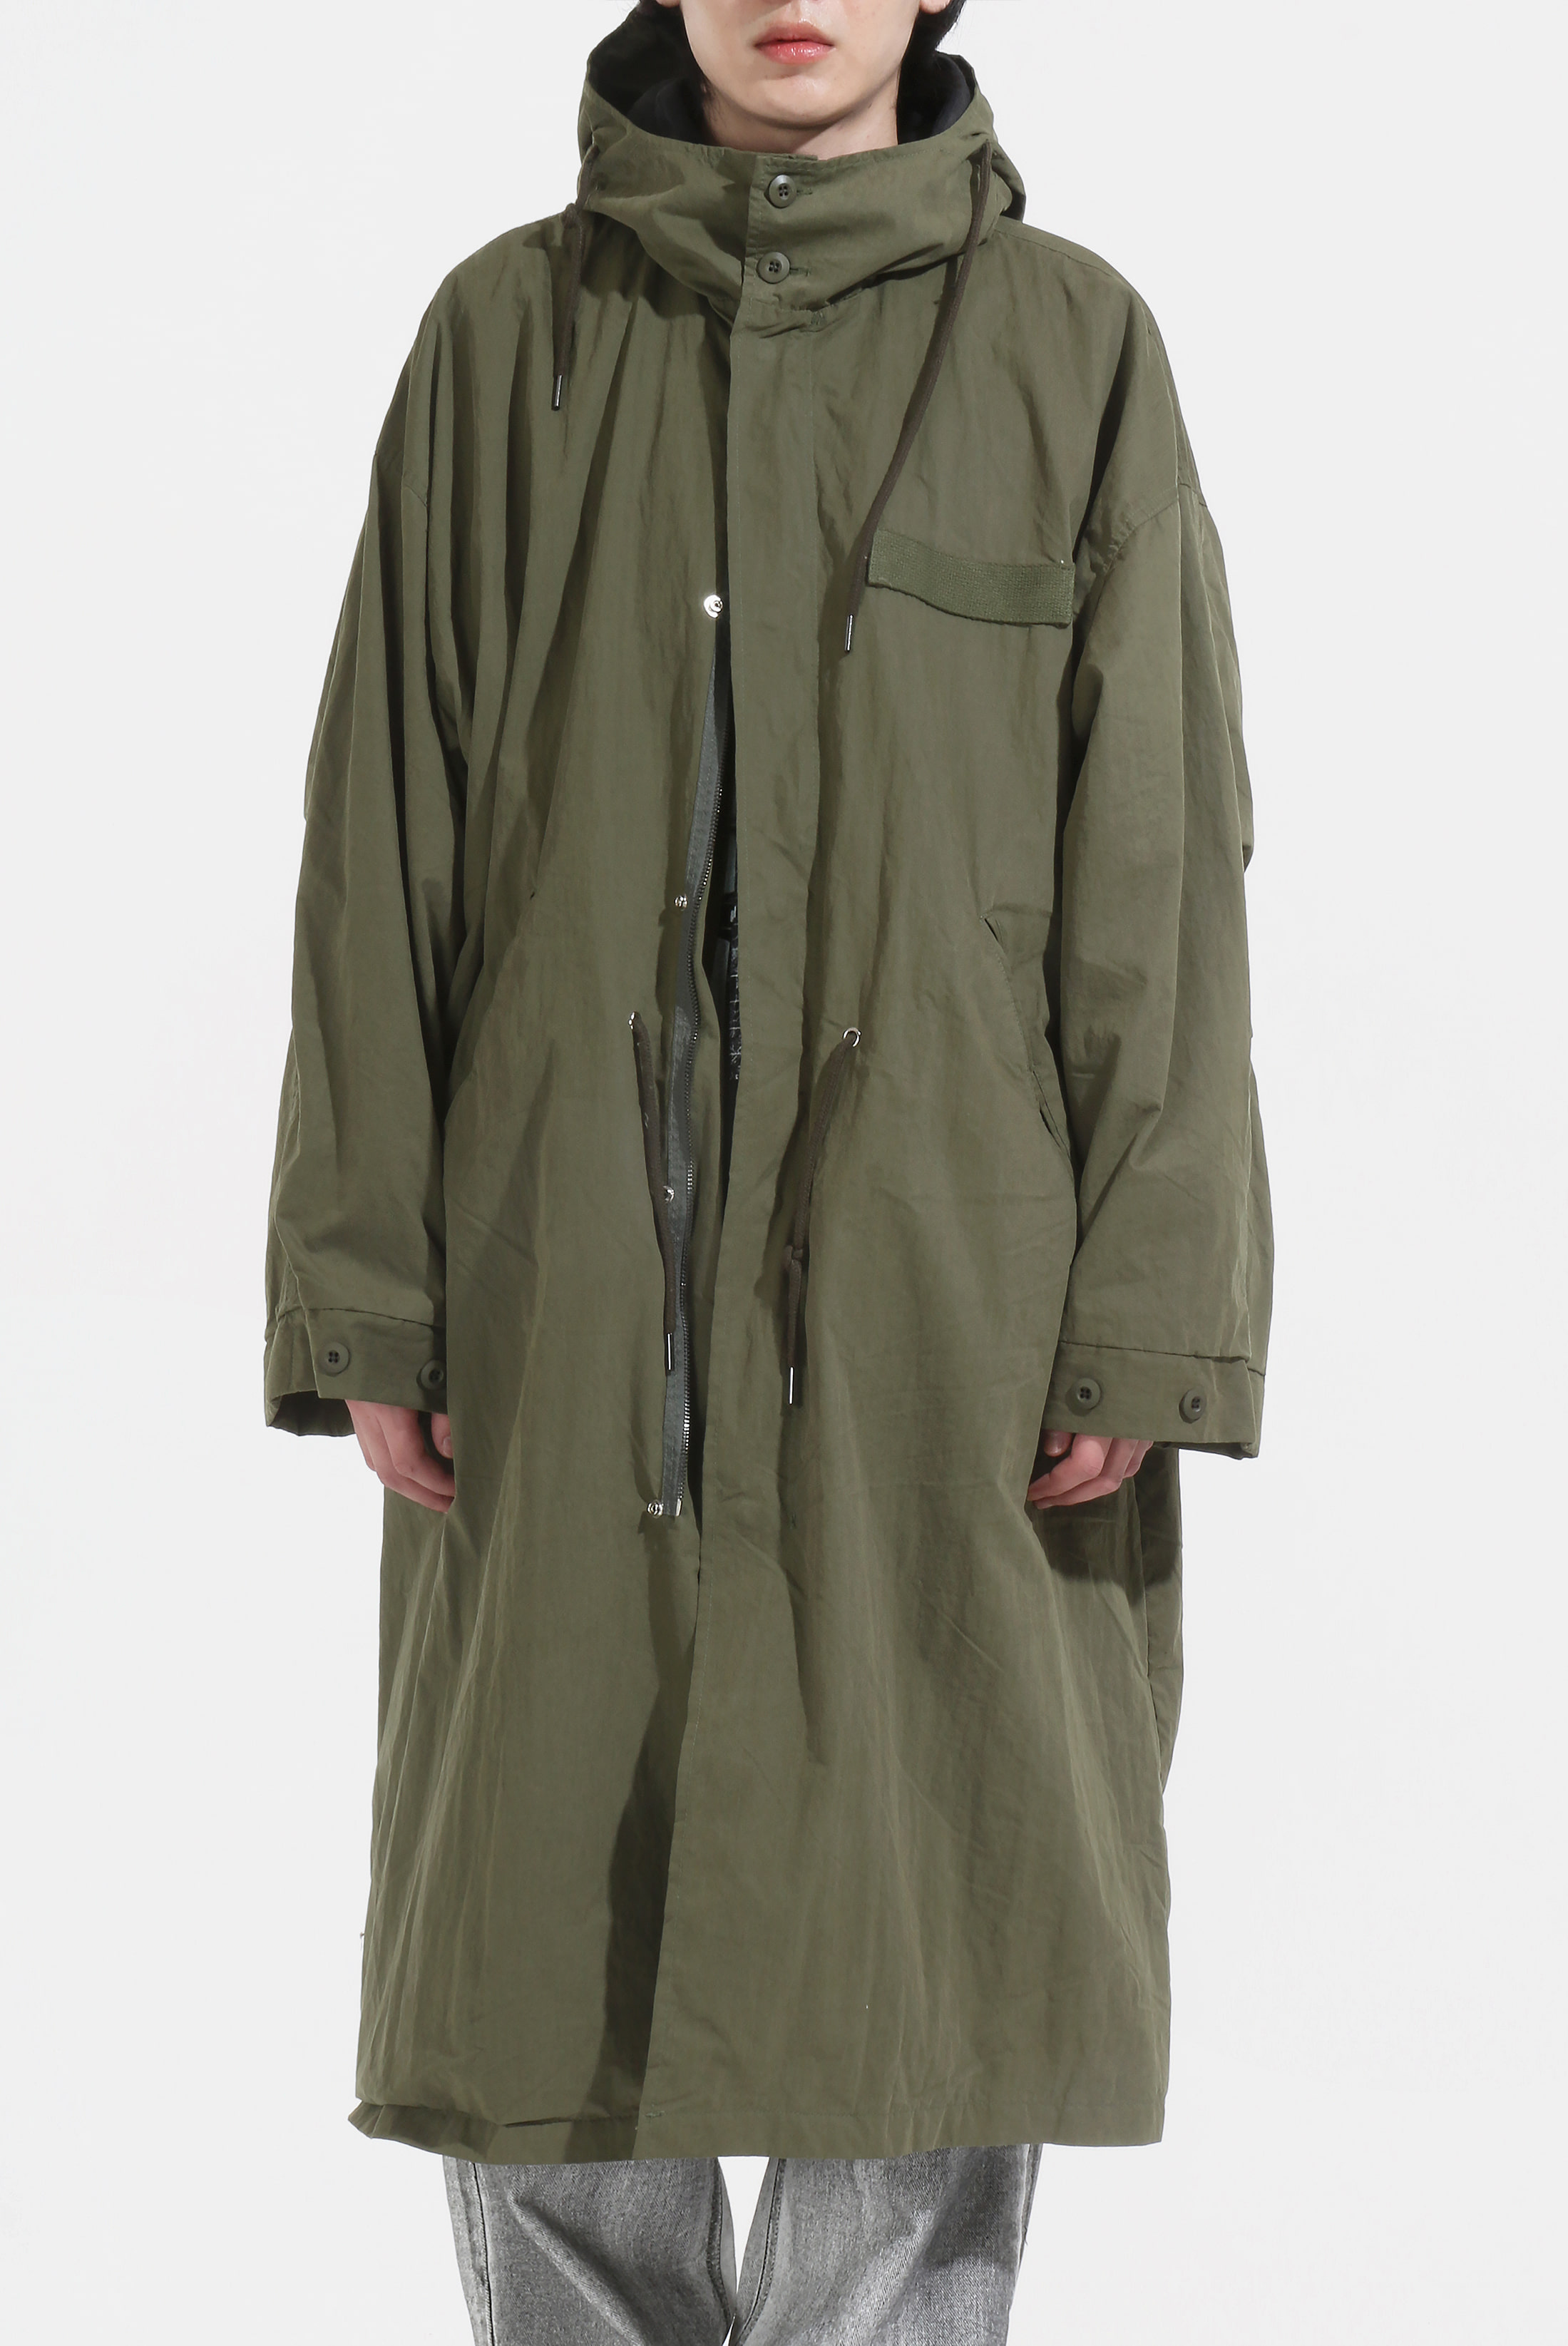 Moz Hood Field Long_Jacket